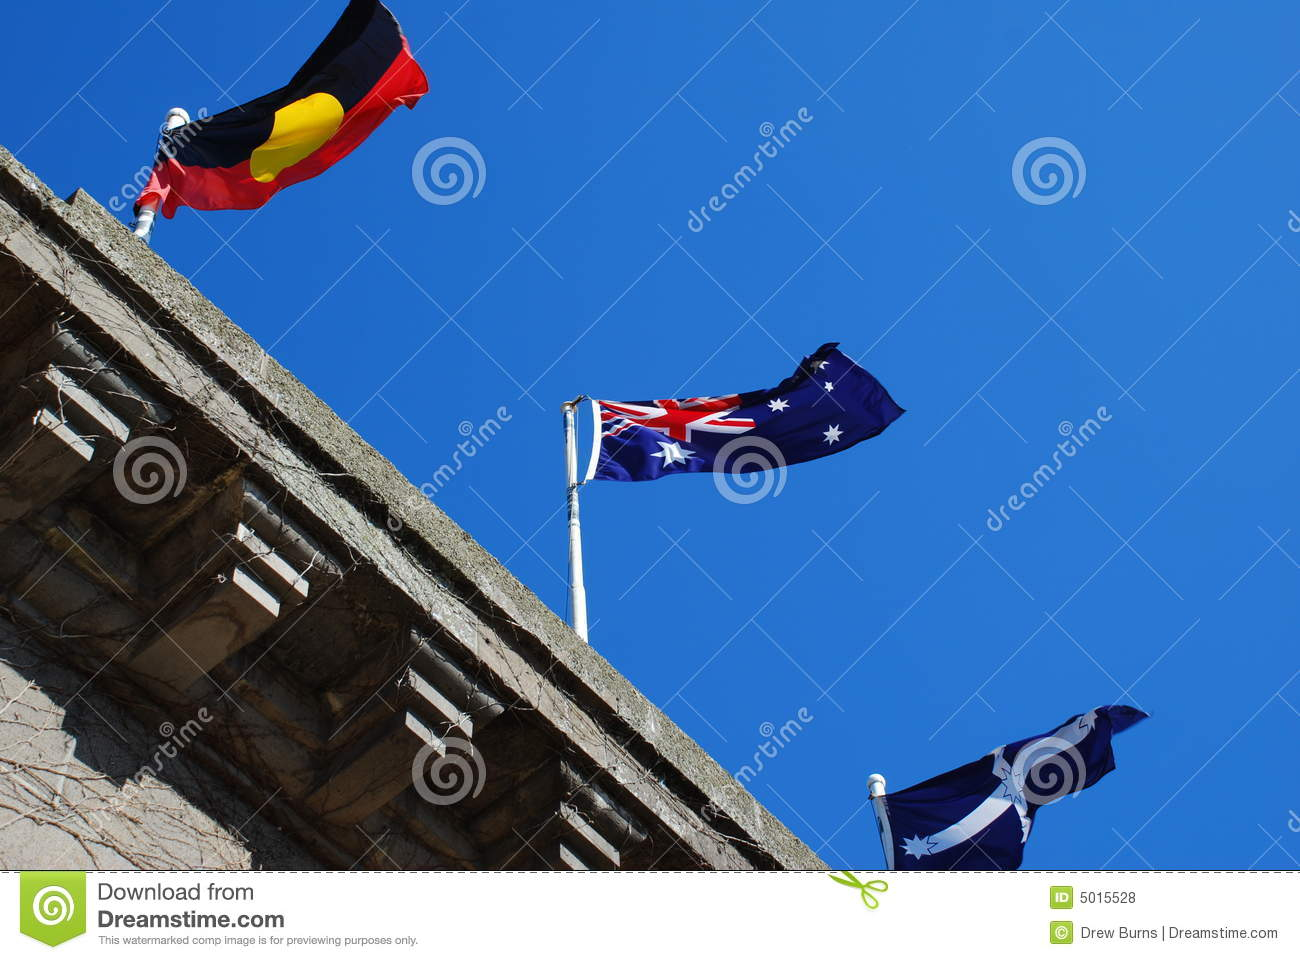 High Resolution Wallpaper | Eureka Flag 1300x960 px